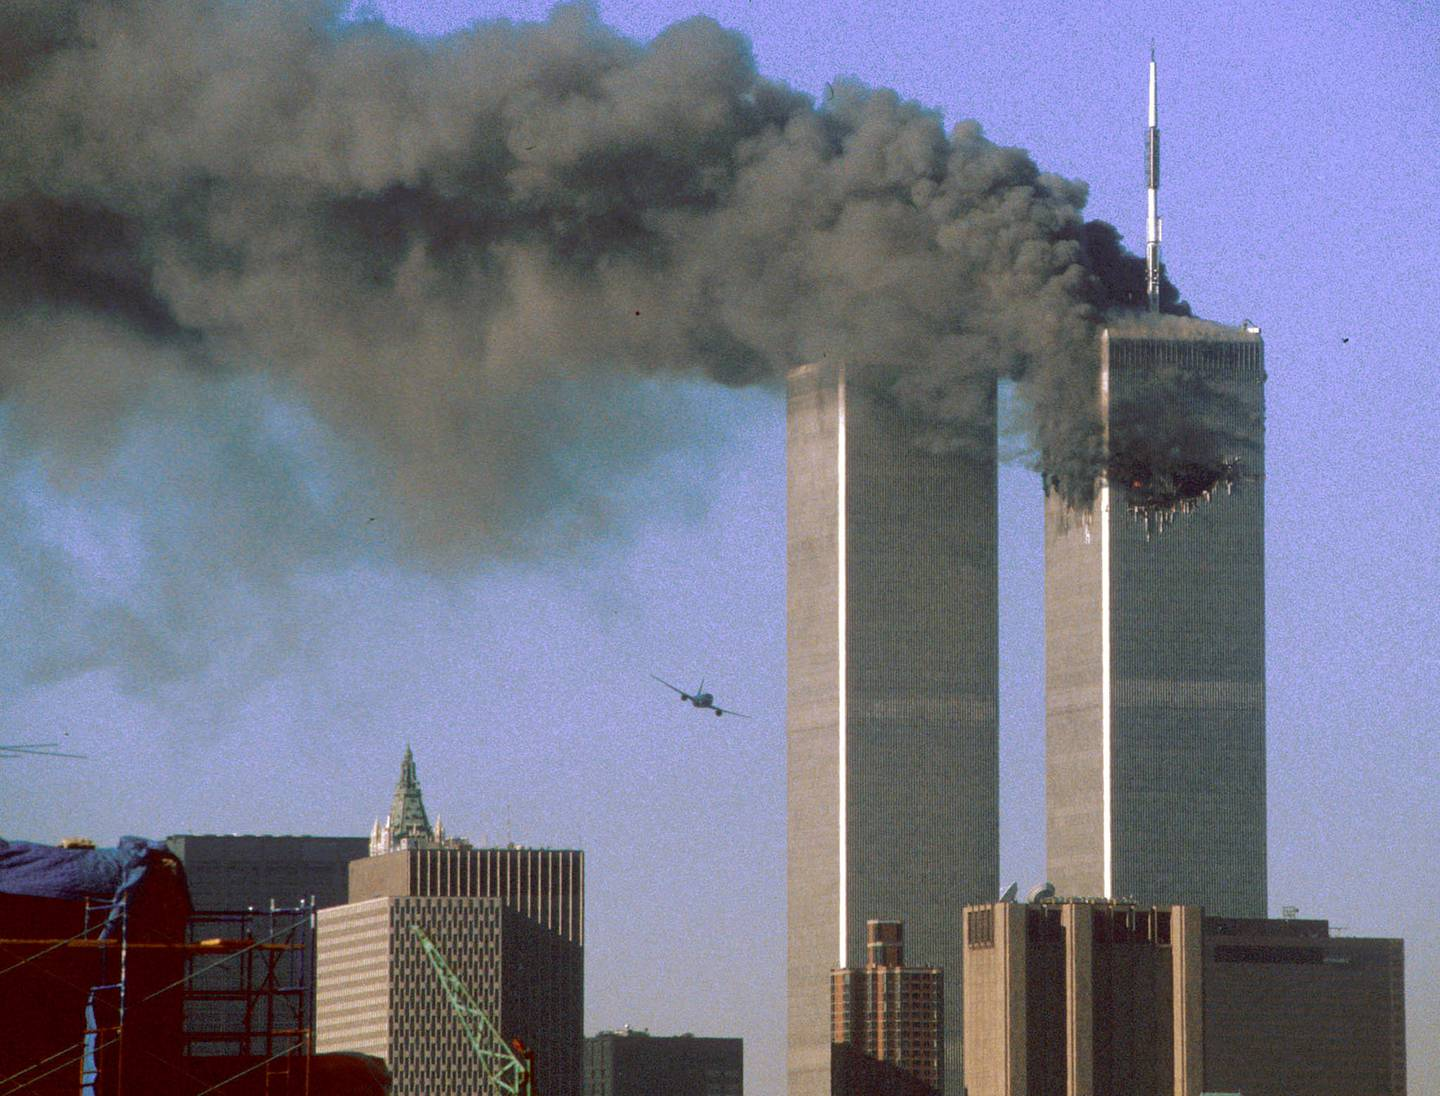 Hijacked United Airlines Flight 175 (L) flies toward the World Trade Center twin towers shortly before slamming into the south tower (L) as the north tower burns following an earlier attack by a hijacked airliner in New York City September 11, 2001. The stunning aerial assaults on the huge commercial complex where more than 40,000 people worked on an ordinary day were part of a coordinated attack aimed at the nation's financial heart. They destroyed one of America's most dramatic symbols of power and financial strength and left New York reeling. FR05070027 SECOND OF SEVEN PHOTOGRAPHS REUTERS/Sean Adair  SV